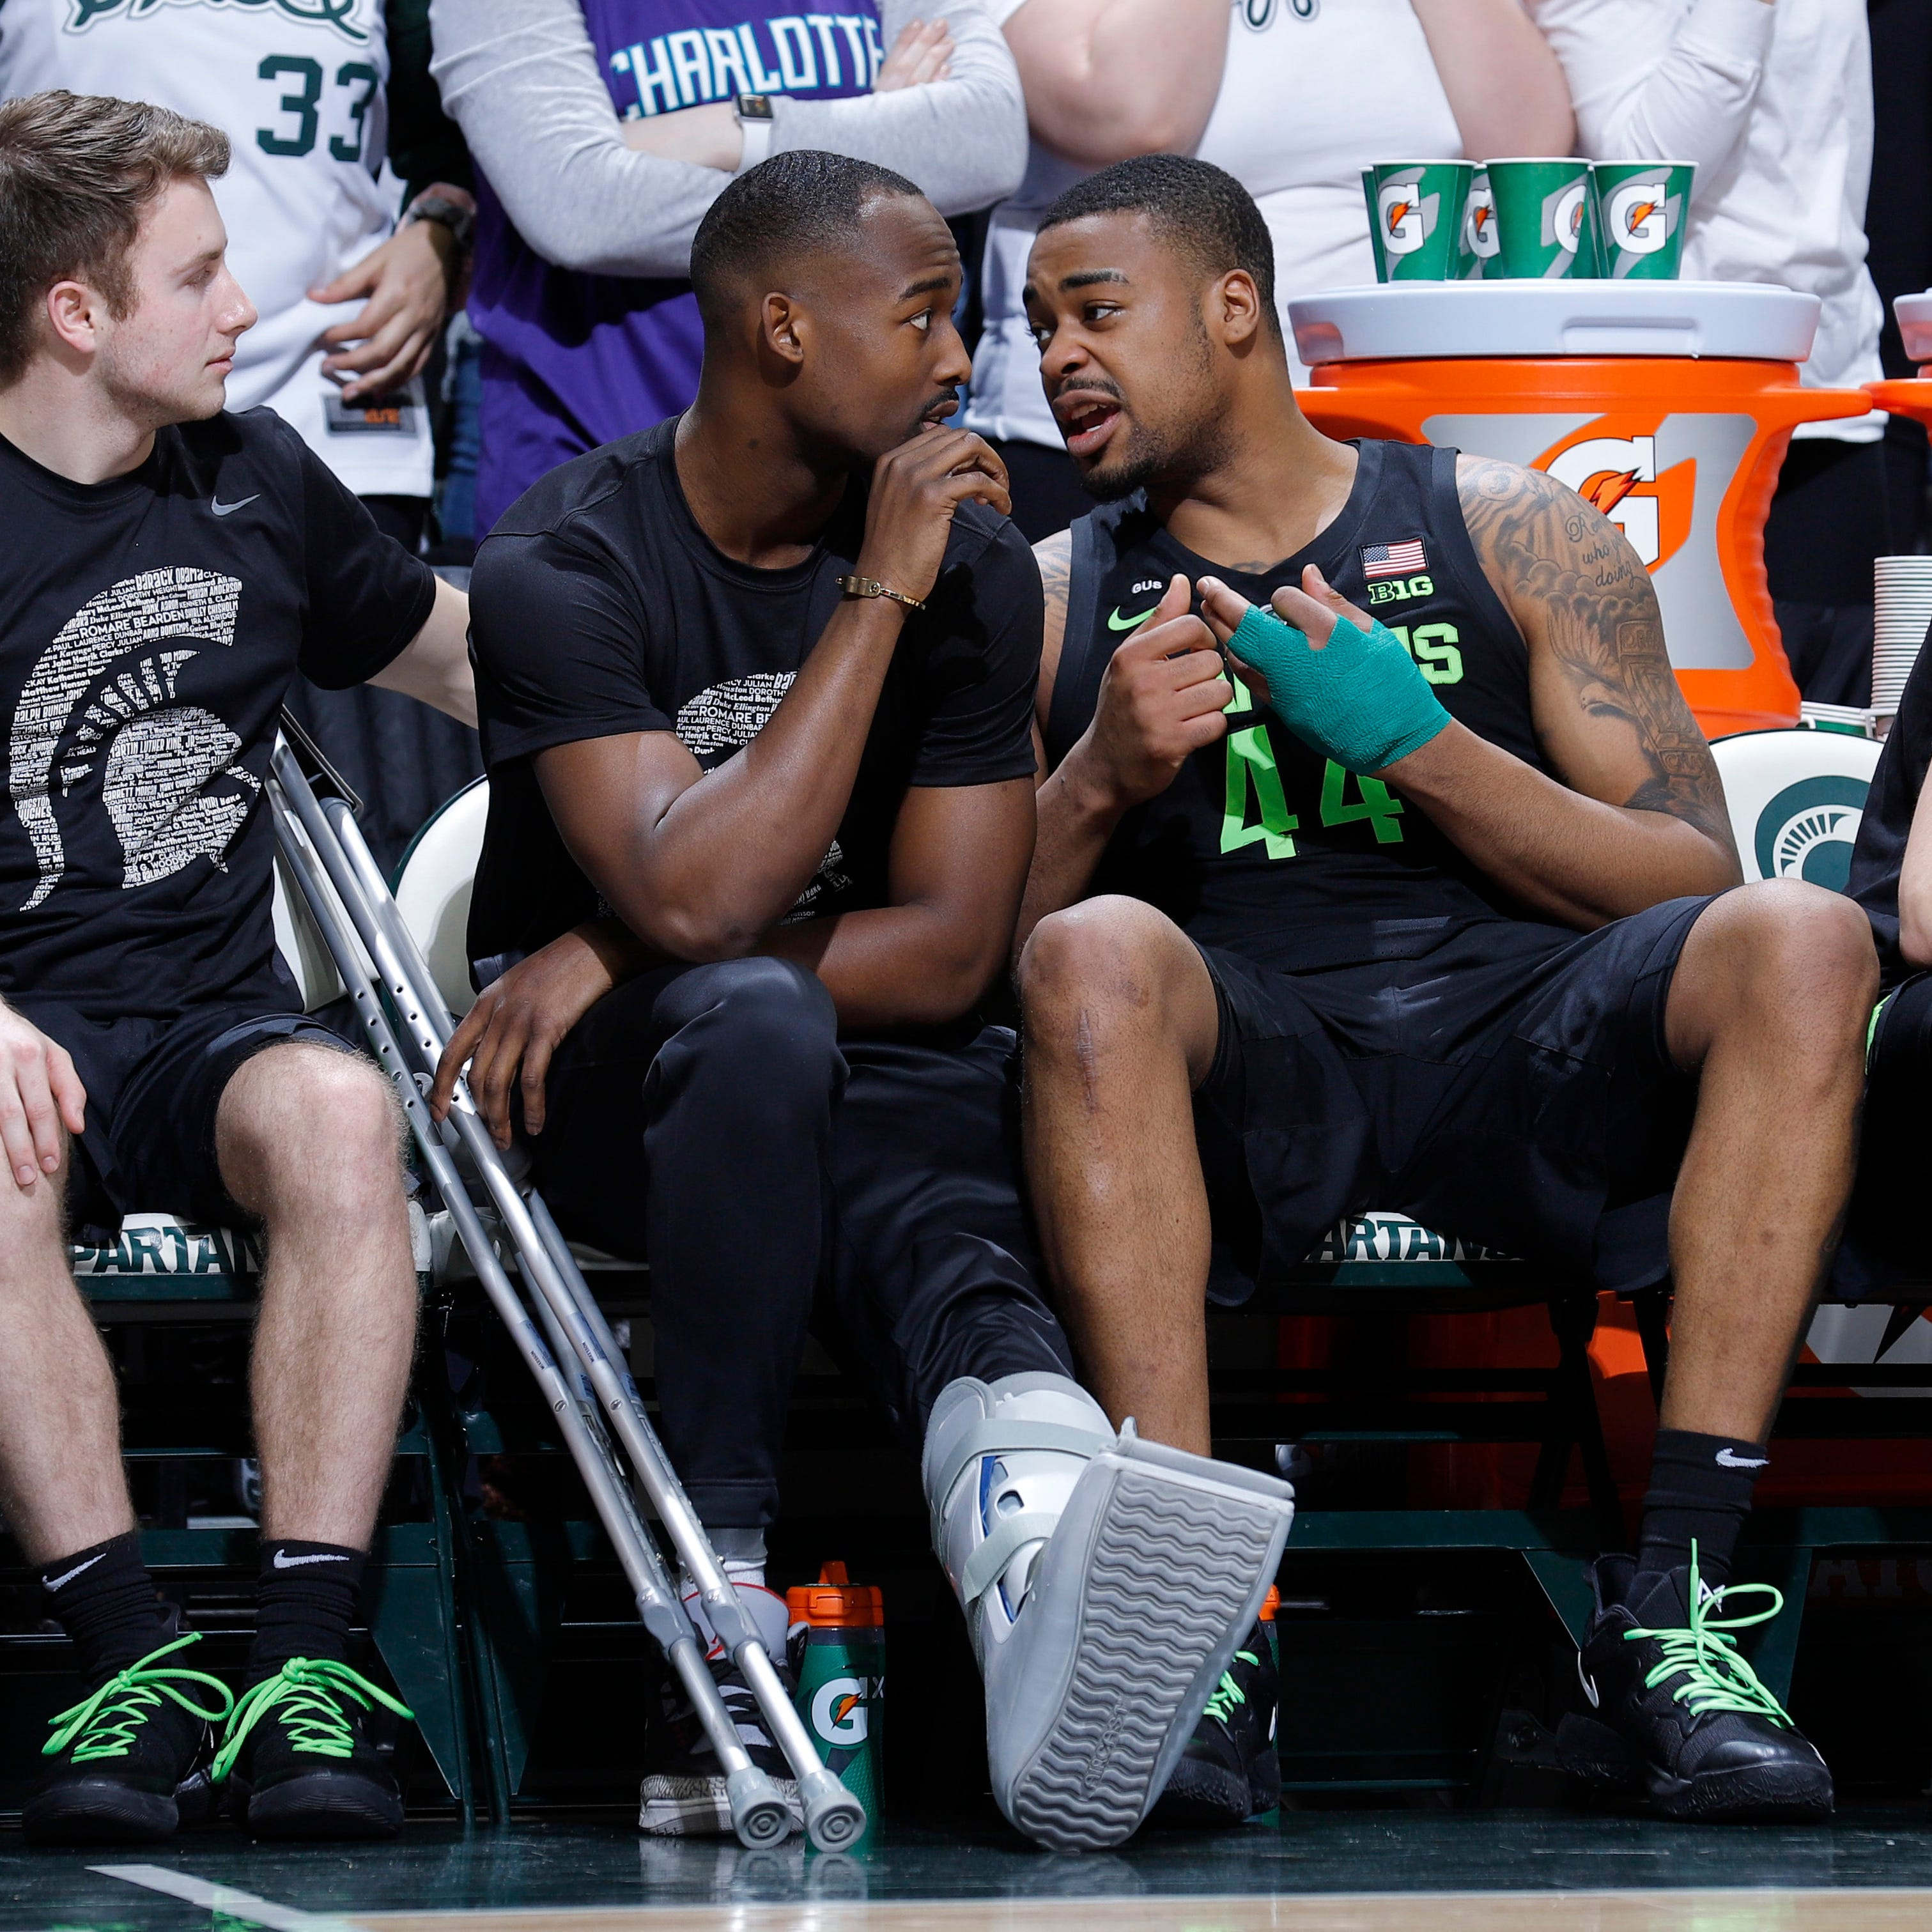 Michigan State's Nick Ward has hairline fracture in left hand